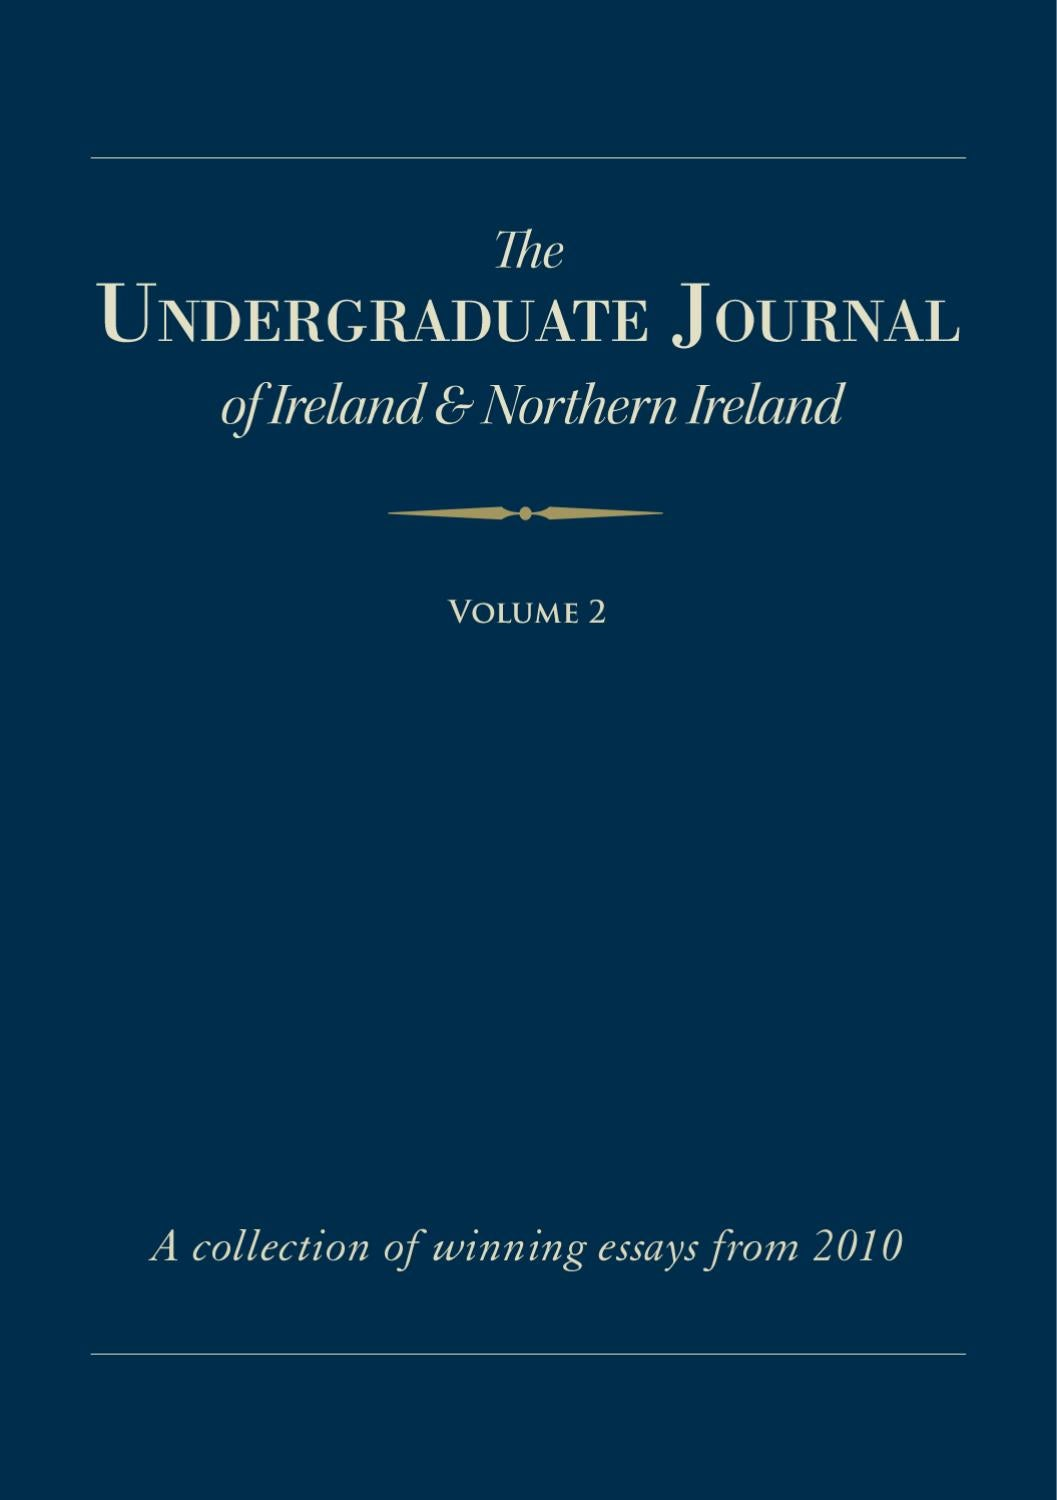 The Undegraduate Journal By Gearoid O Rourke Issuu